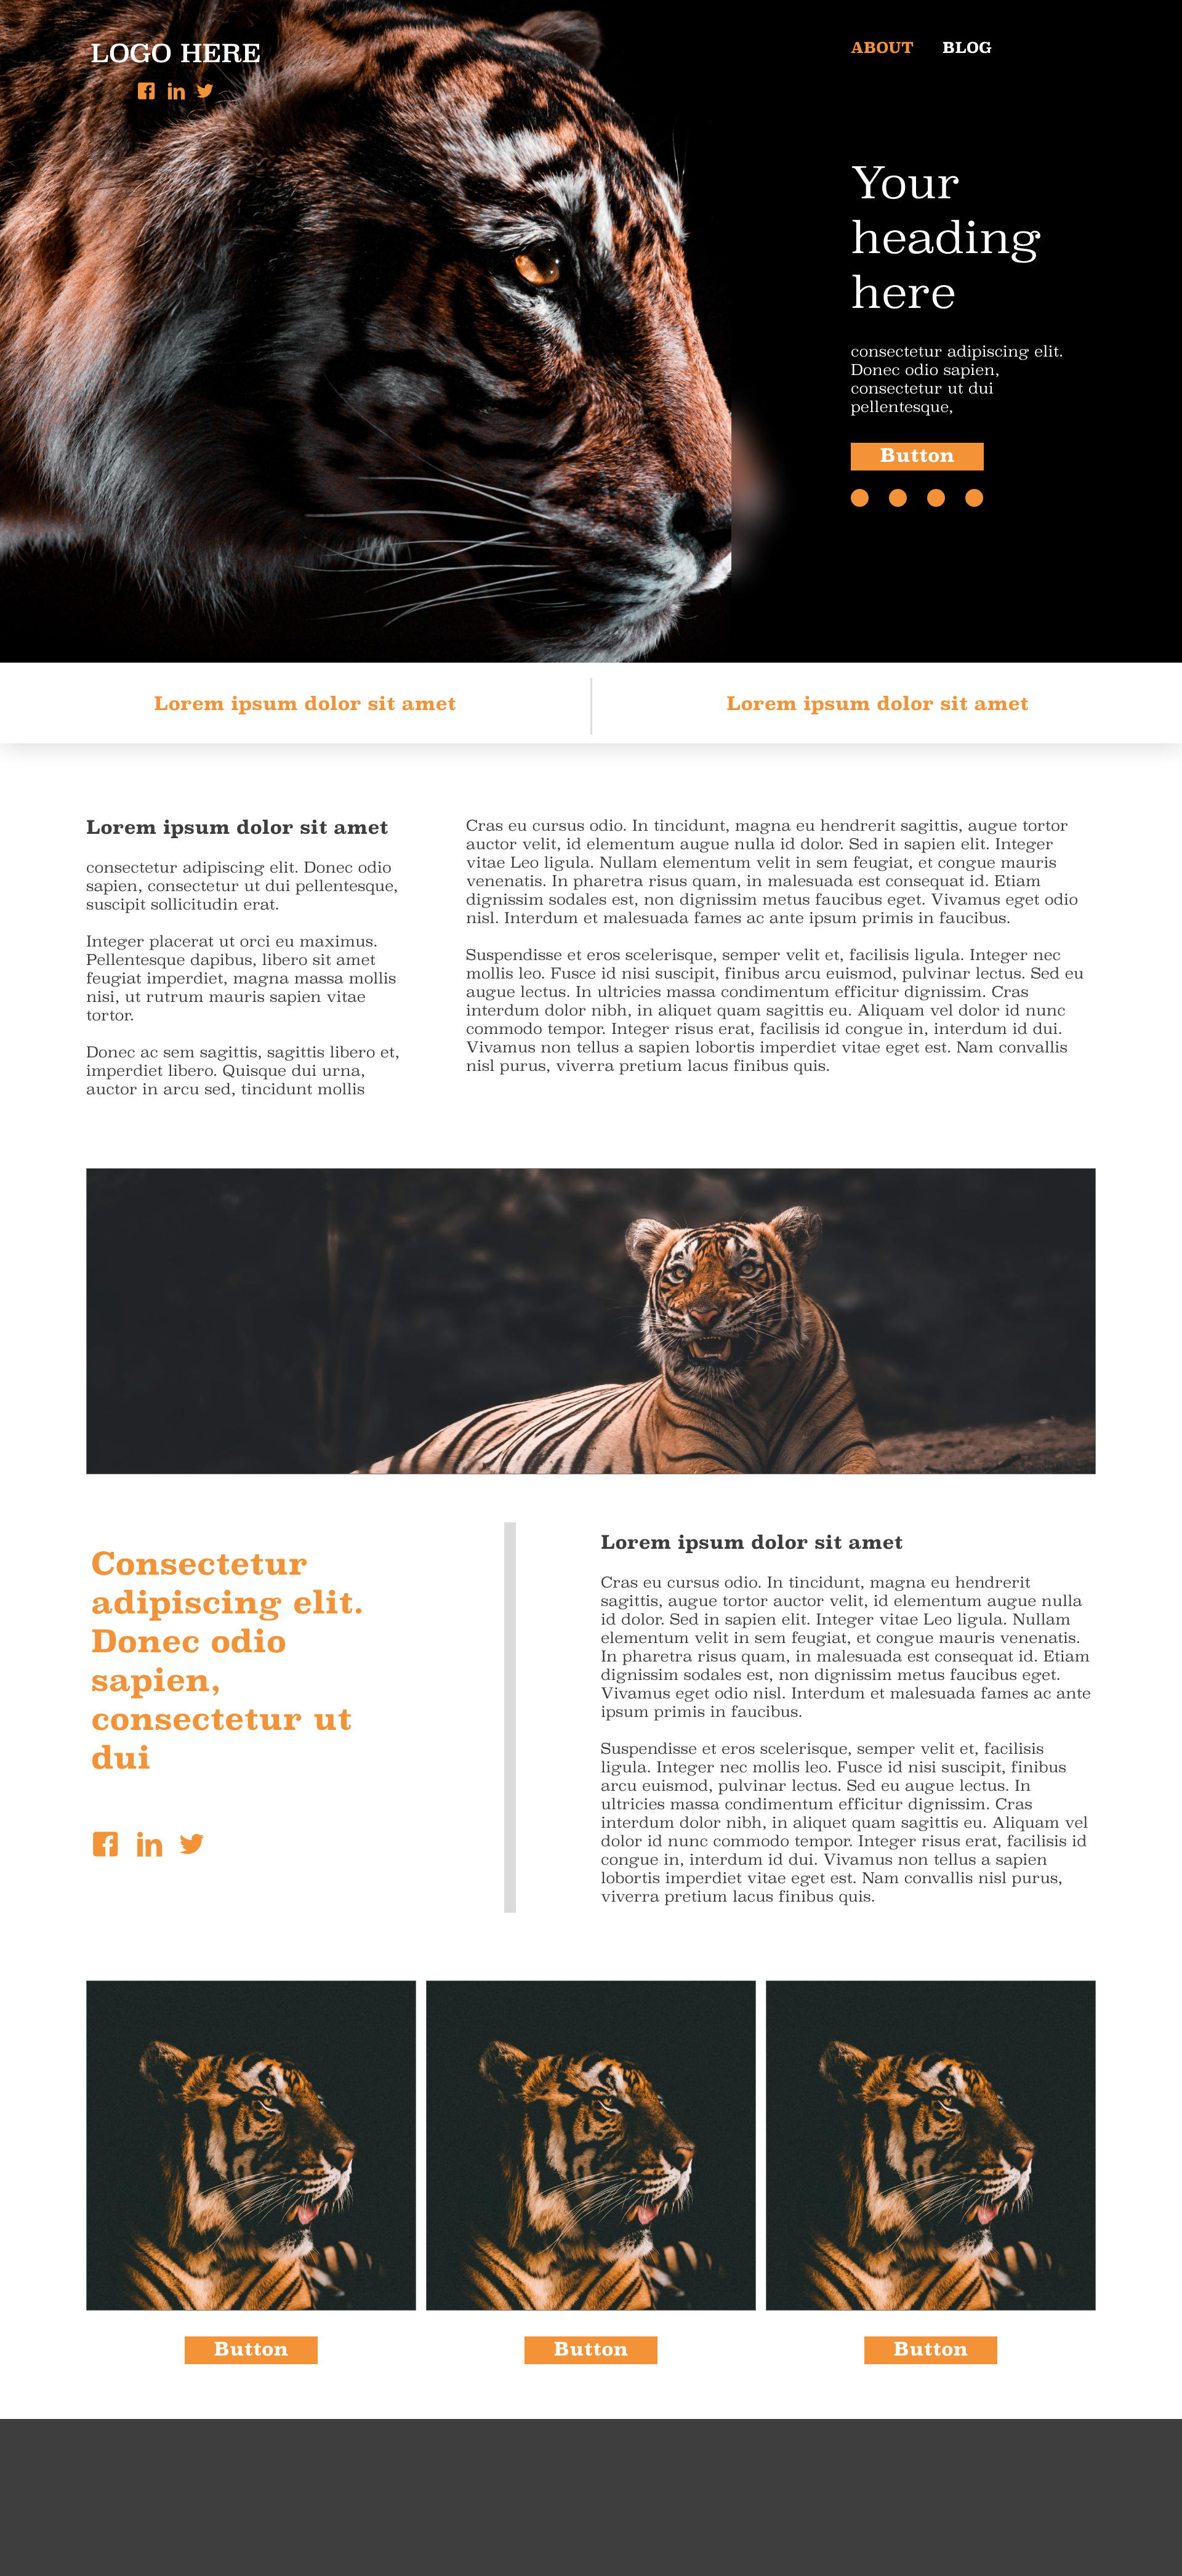 Tiger template's gallery image